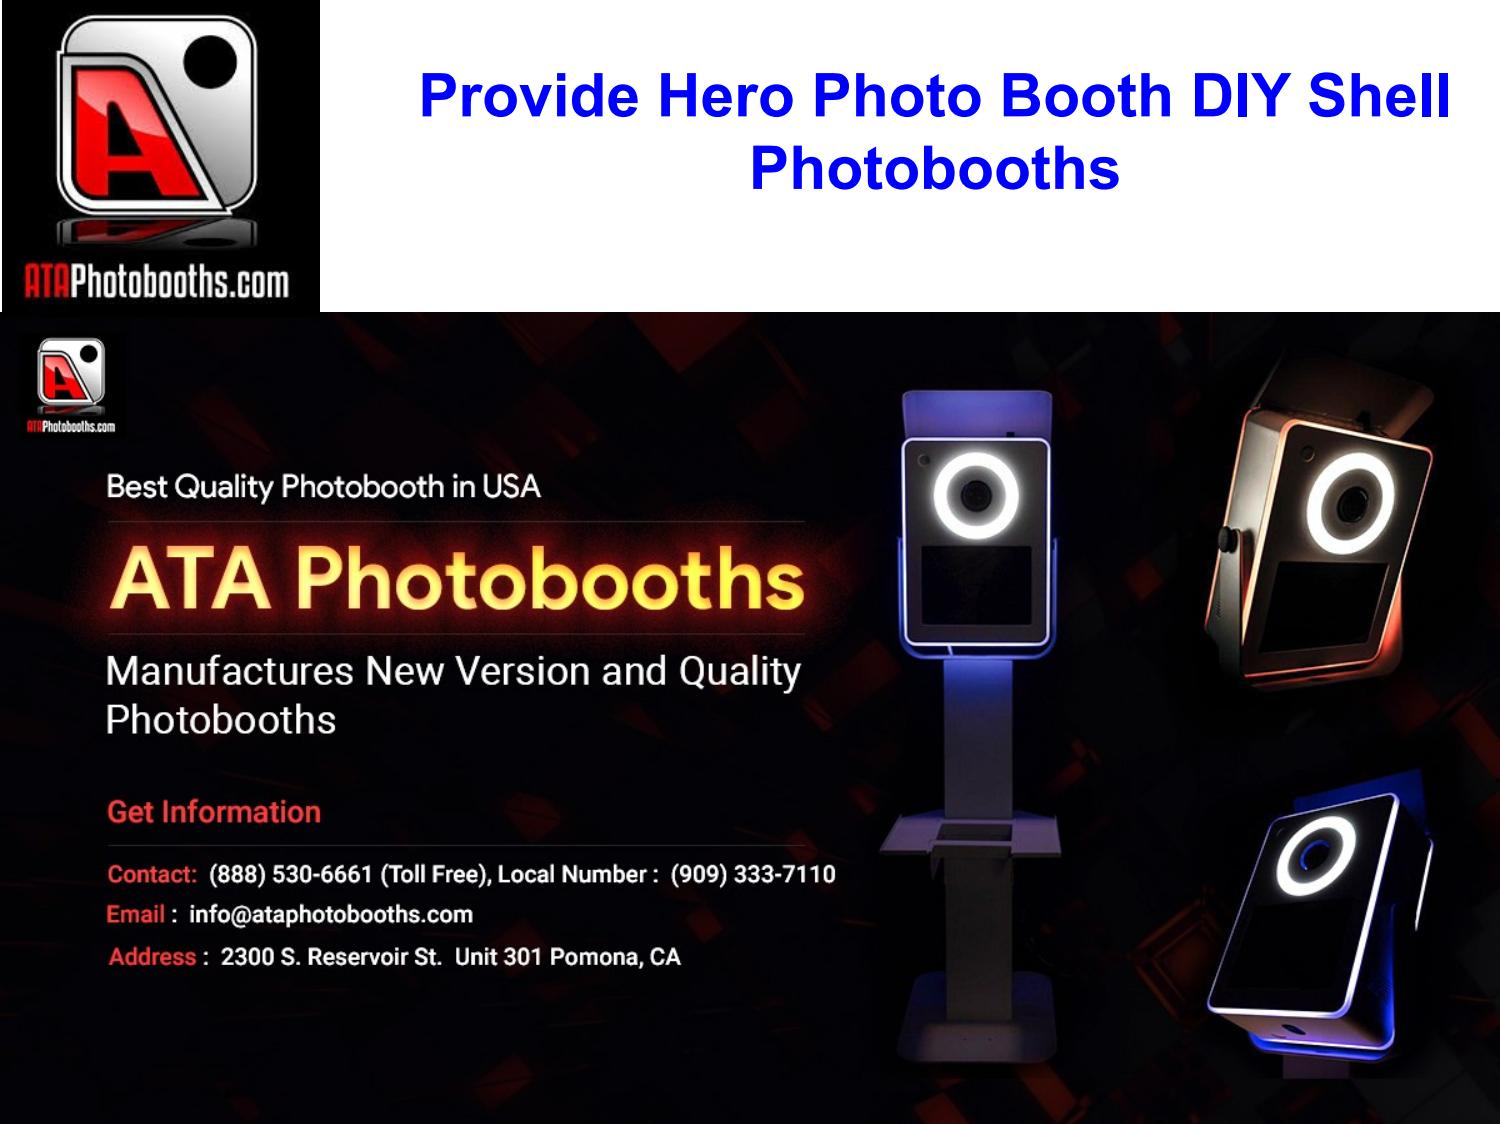 Provide Hero Photo Booth Diy Shell Photobooths By Ata Photobooths Issuu